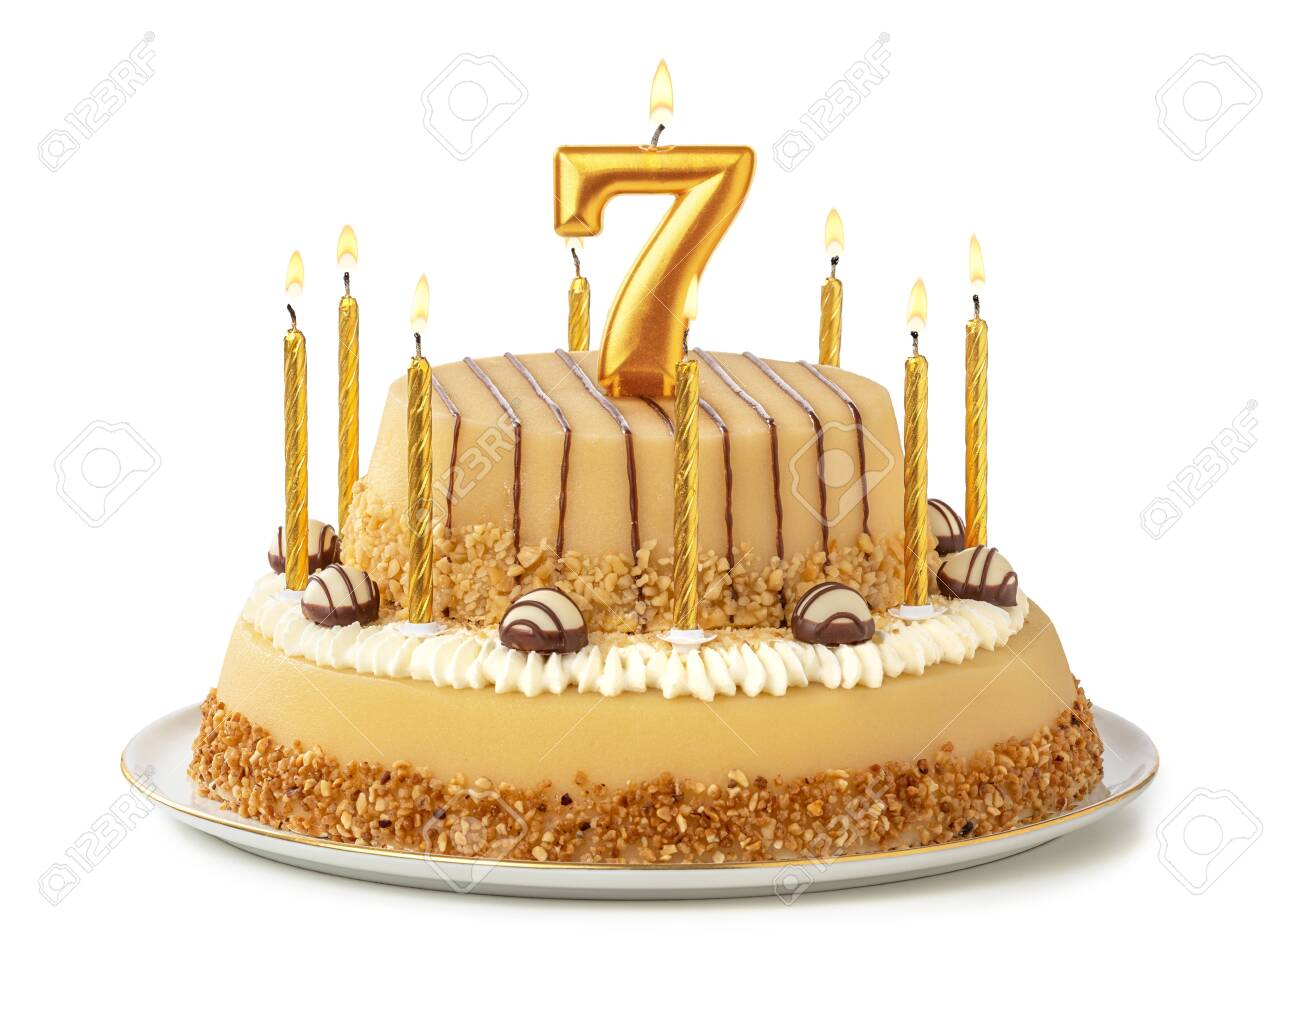 Stupendous Festive Cake With Golden Candles Number 7 Royalty Vrije Foto Funny Birthday Cards Online Inifodamsfinfo